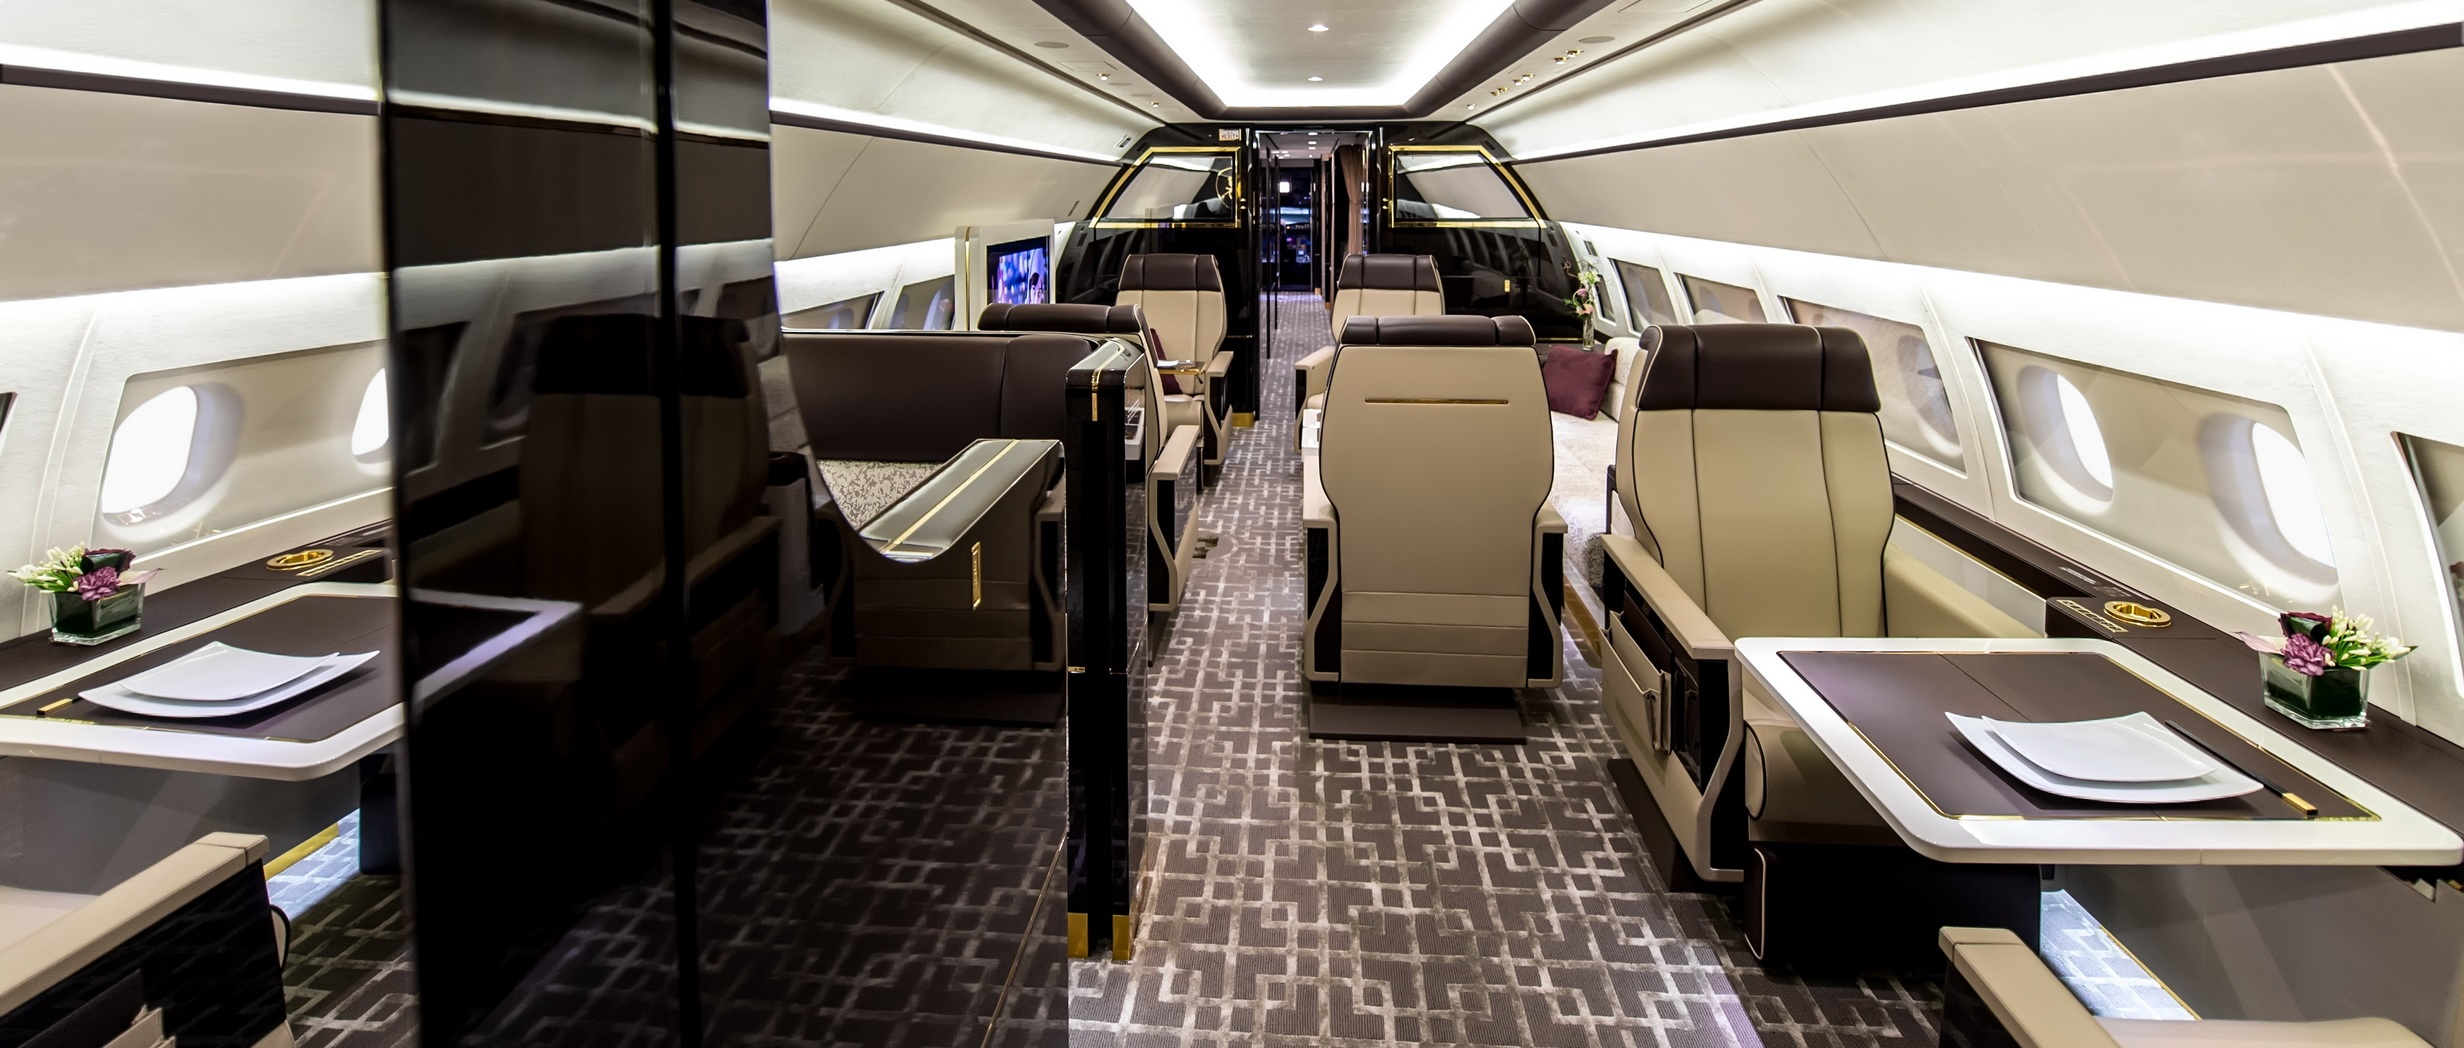 Private jet interior furnished like a vintage train aviation - Http Www Spearswms Com Wp Content Uploads 2016 02 Mainj Jpg